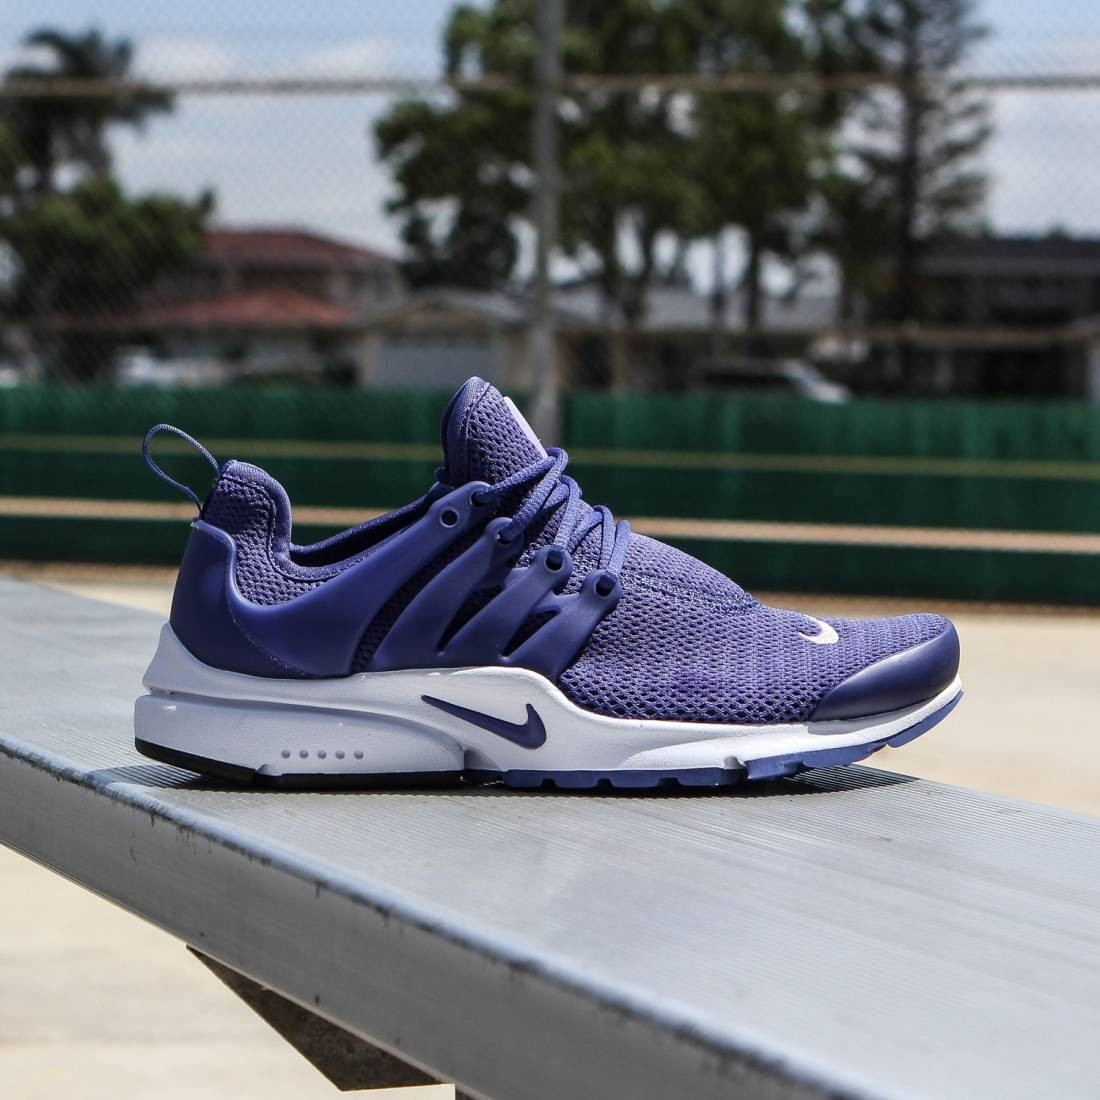 new styles c56d3 16540 Nike Women WMNS NIKE AIR PRESTO (dk purple dust/bleached lilac/white/dk  purple dust)